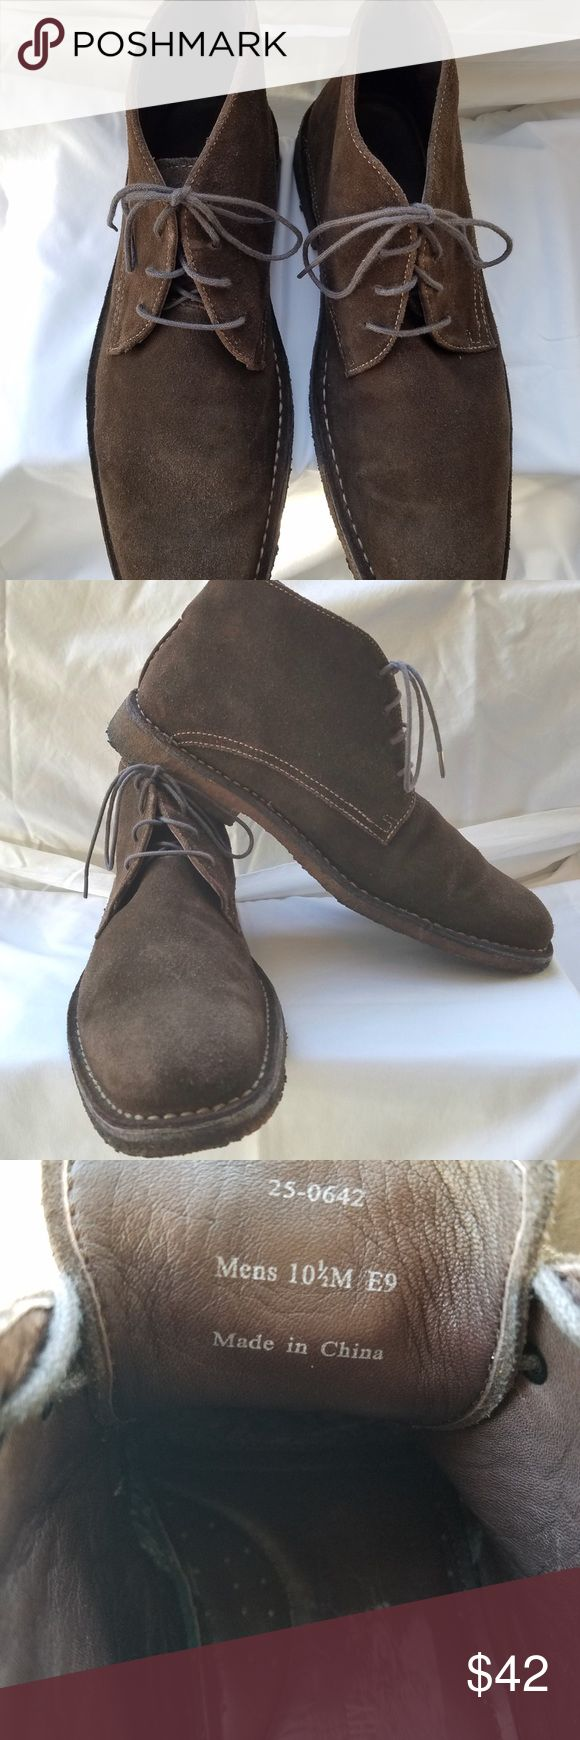 Johnston and Murphy boots, men's size 10.5M Johnston and Murphy brown suede chukka boots size 10.5M with gum shoe soles. Great condition and barely worn. True to size. Johnston & Murphy Shoes Chukka Boots